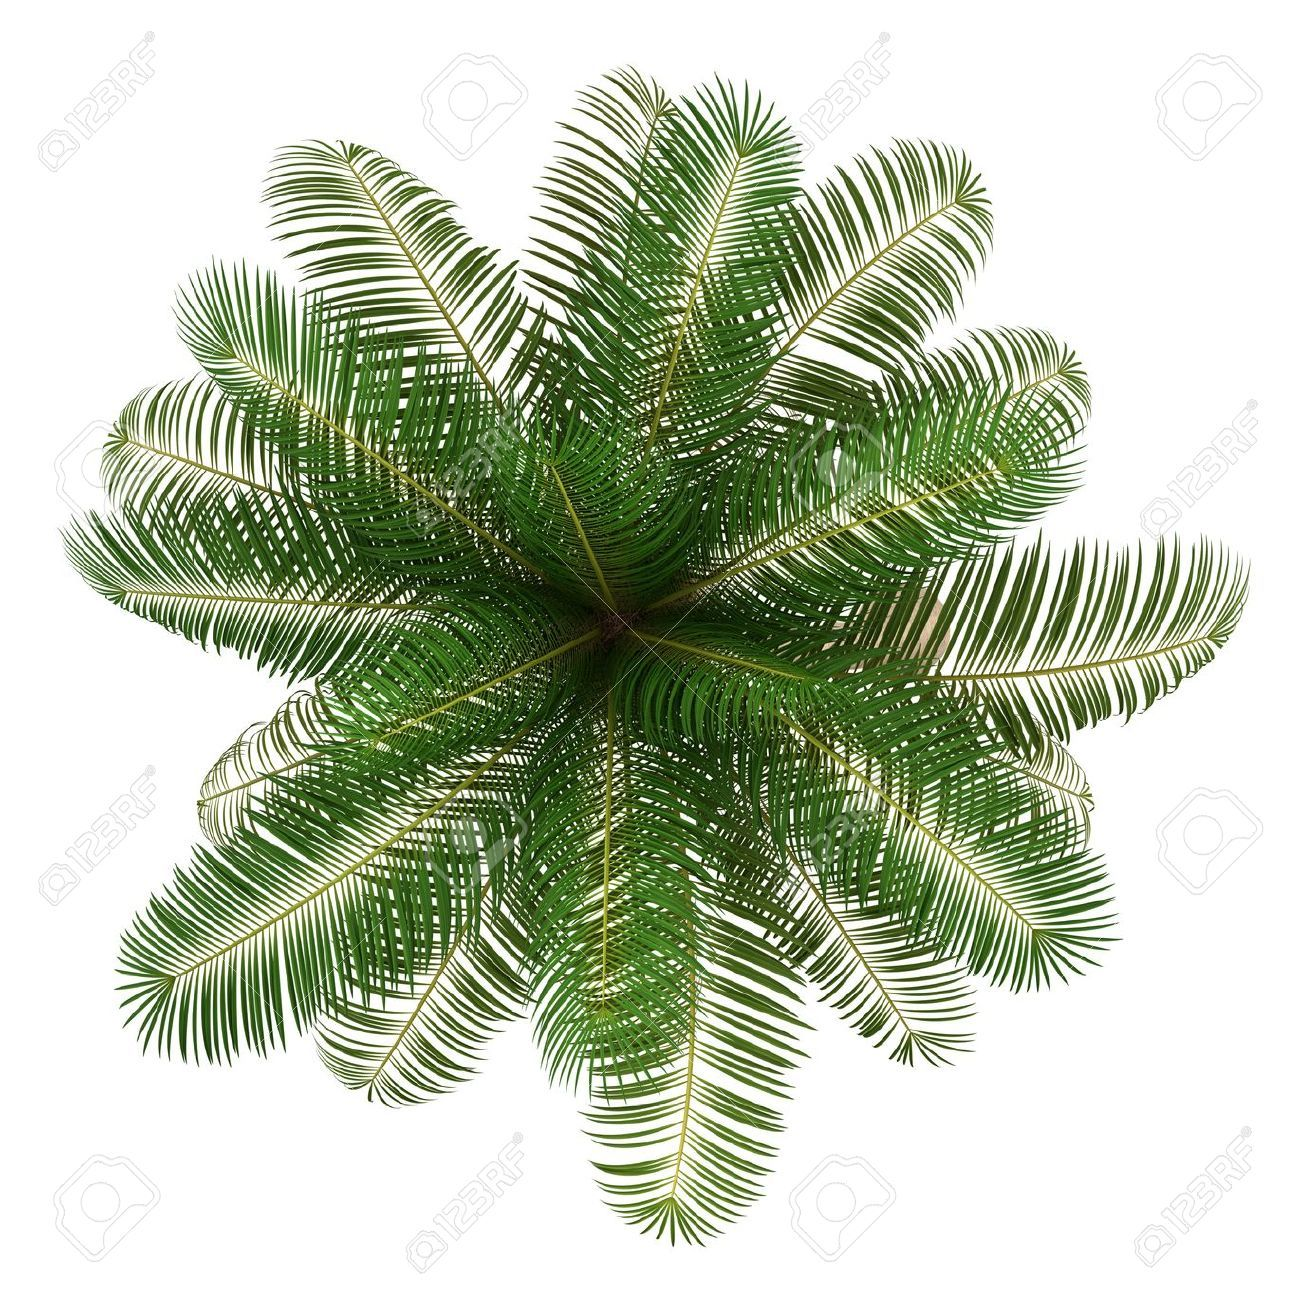 14701249 Top View Of Coconut Palm Tree Isolated On White Background Jpg 1300 1300 Tree Photoshop Trees Top View Tree Plan Png